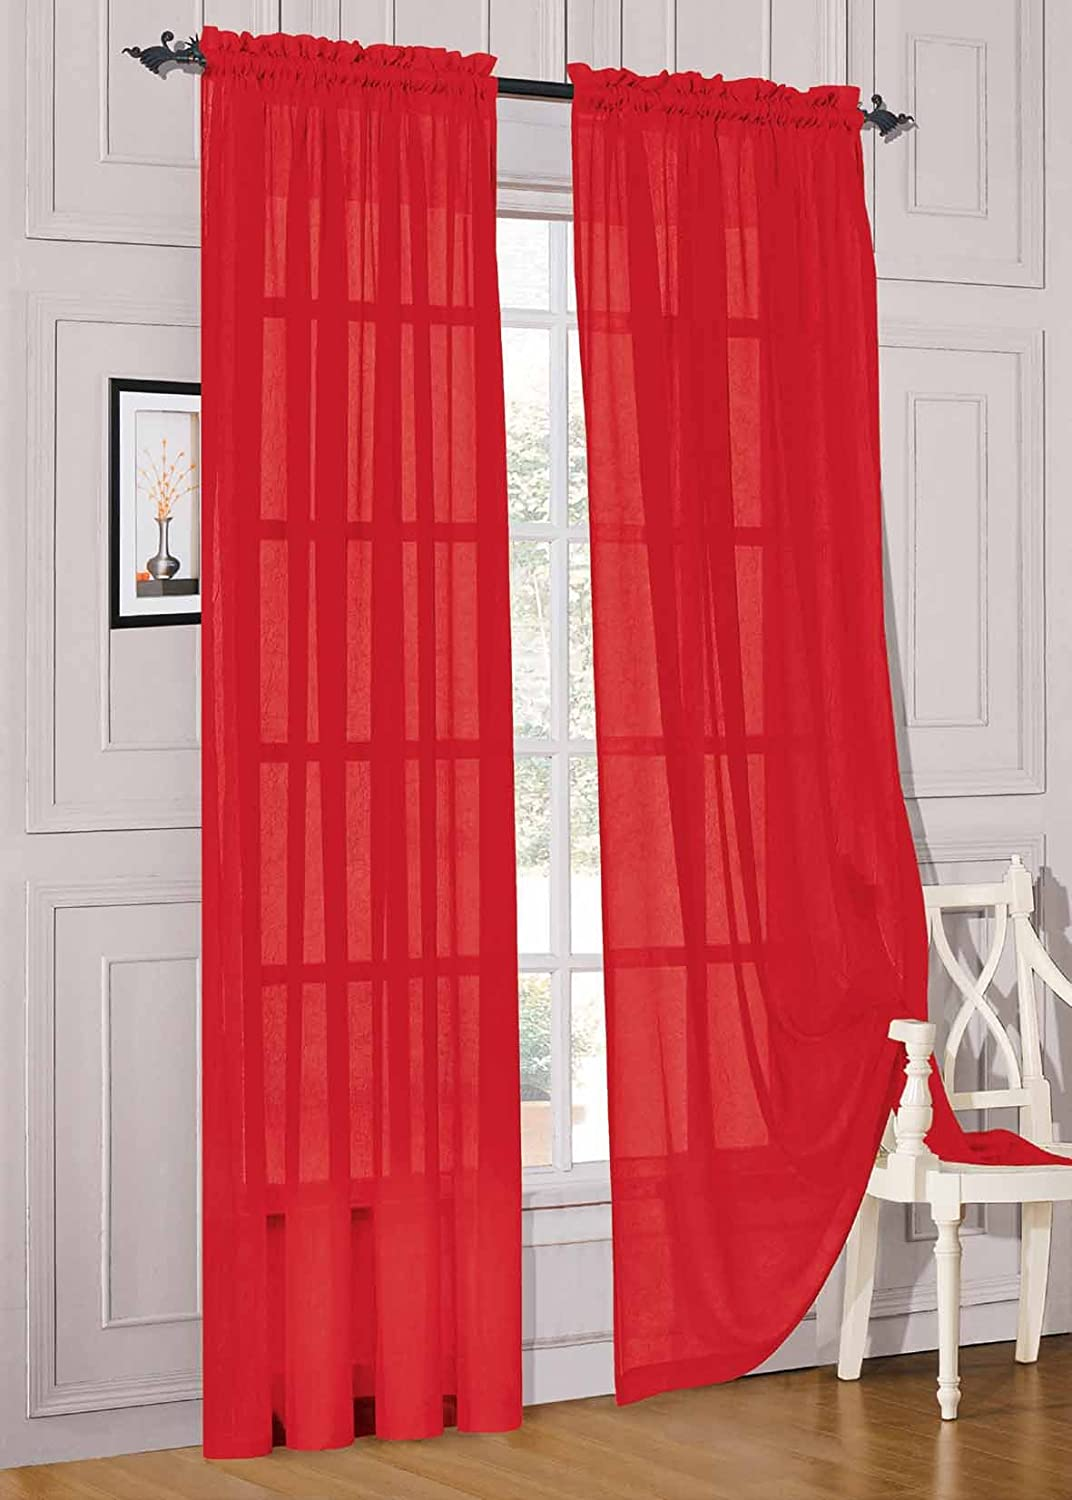 4 types of red sheer curtains phoenix business leader for Linen sheer window panels